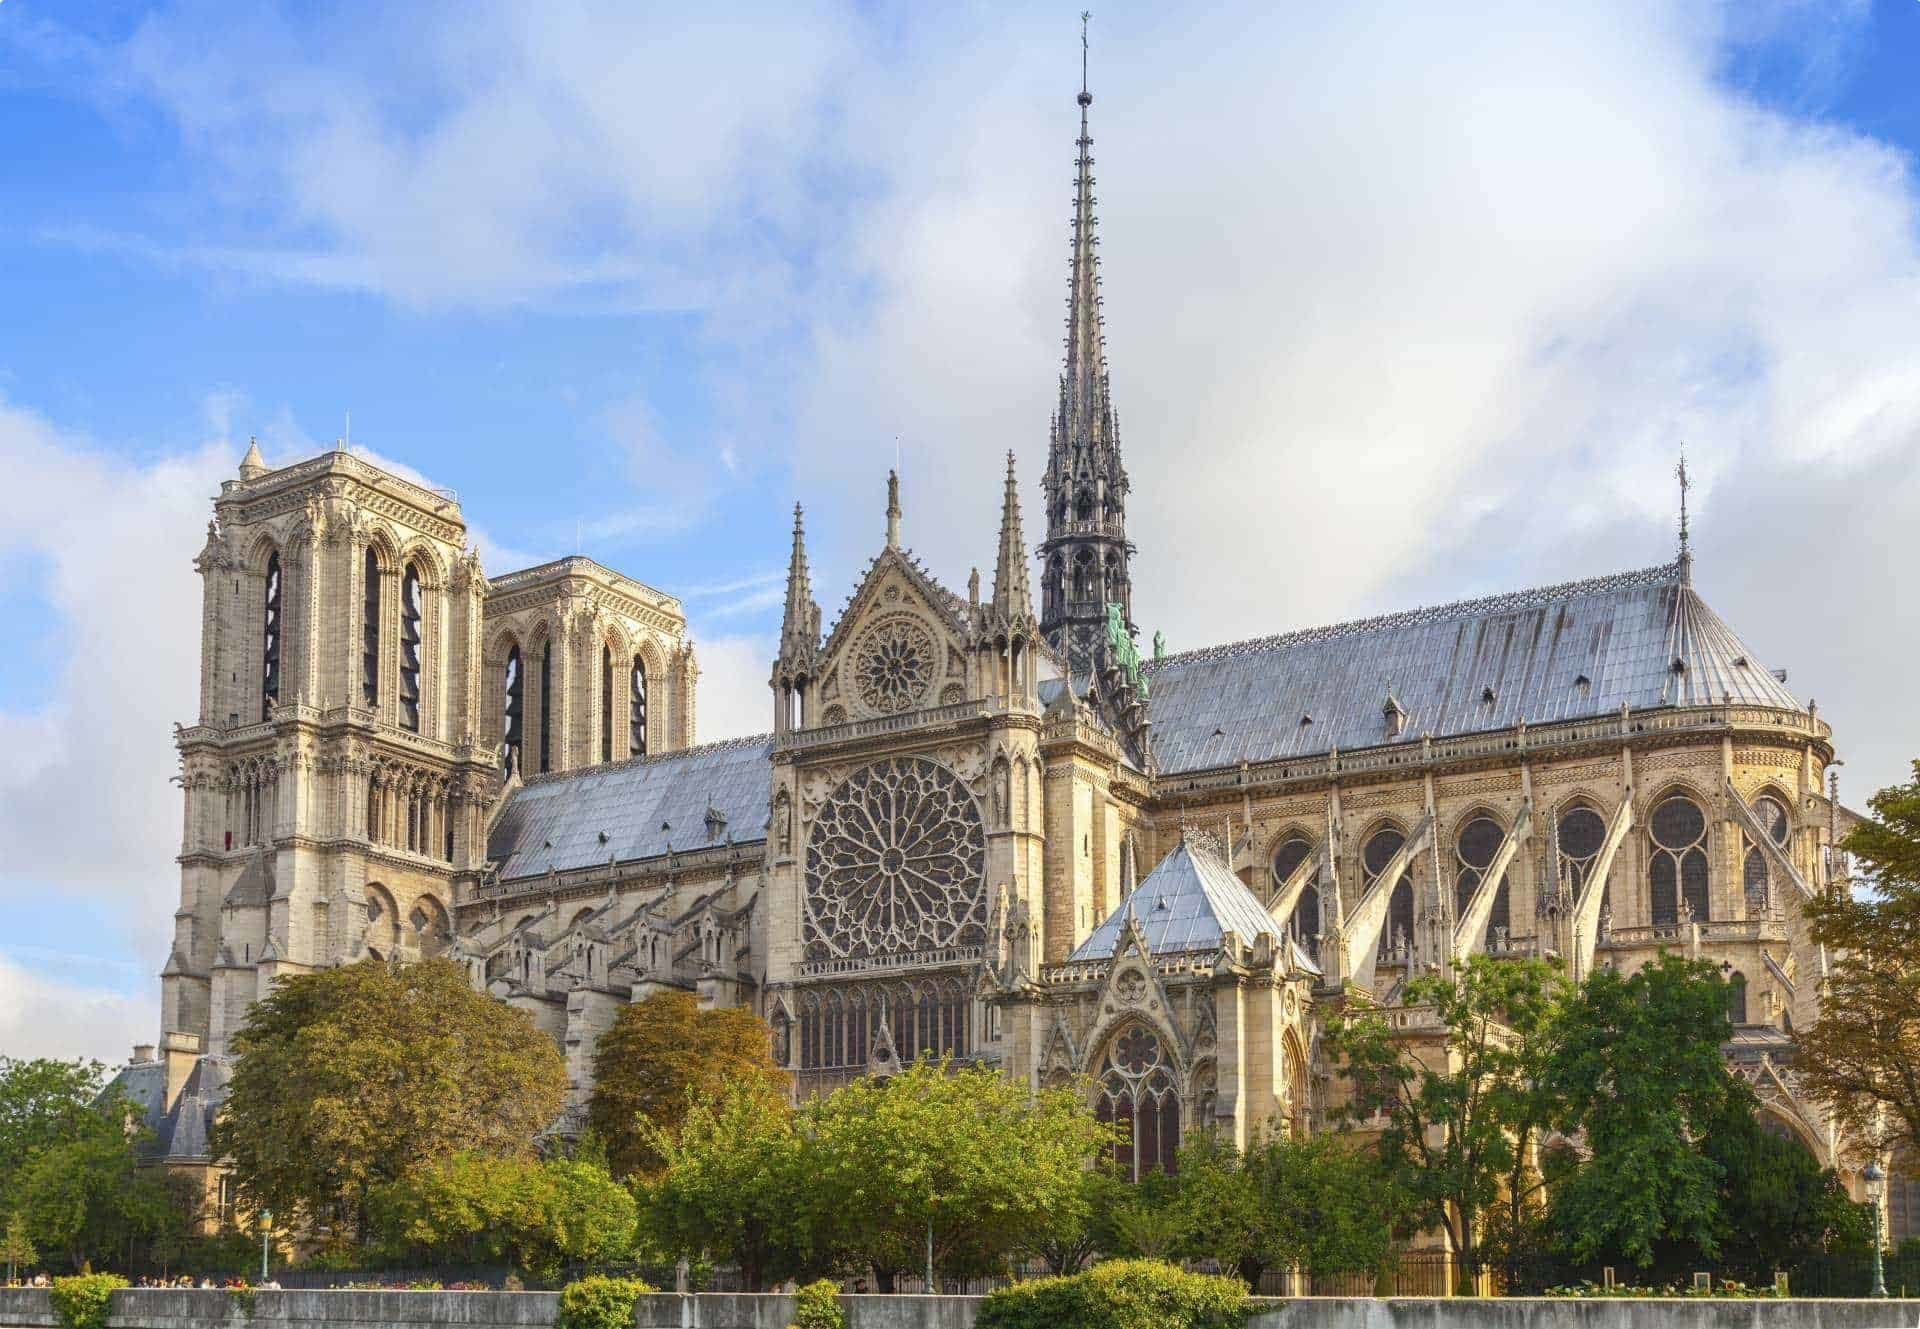 Exploring Paris and France by rail